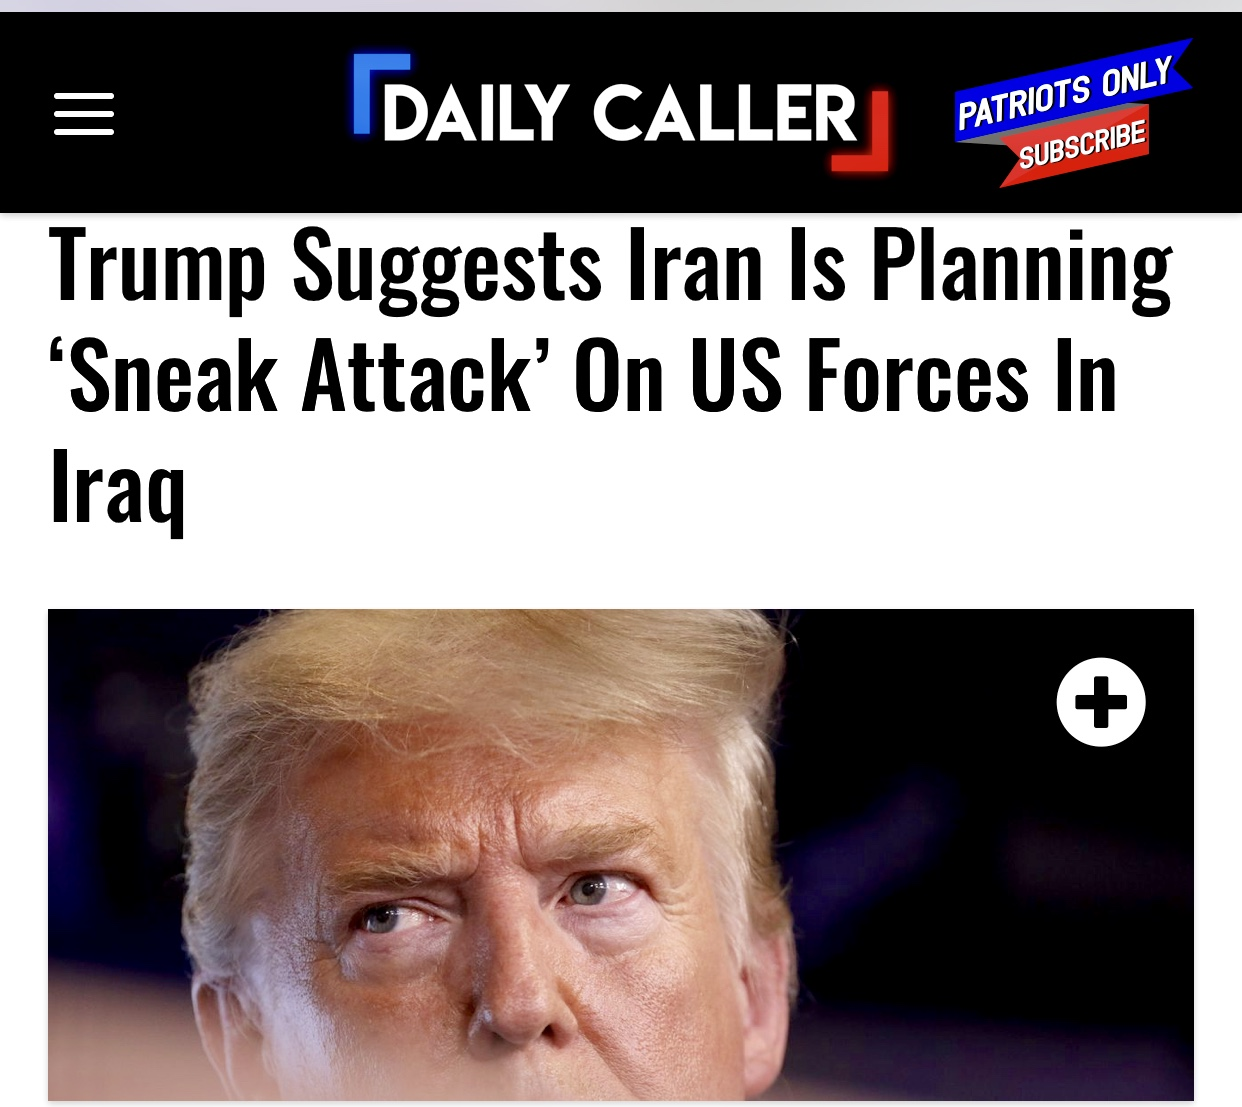 President Trump Suggests Iran Is Planning 'Sneak Attack' On US Forces In Iraq | The Daily Caller